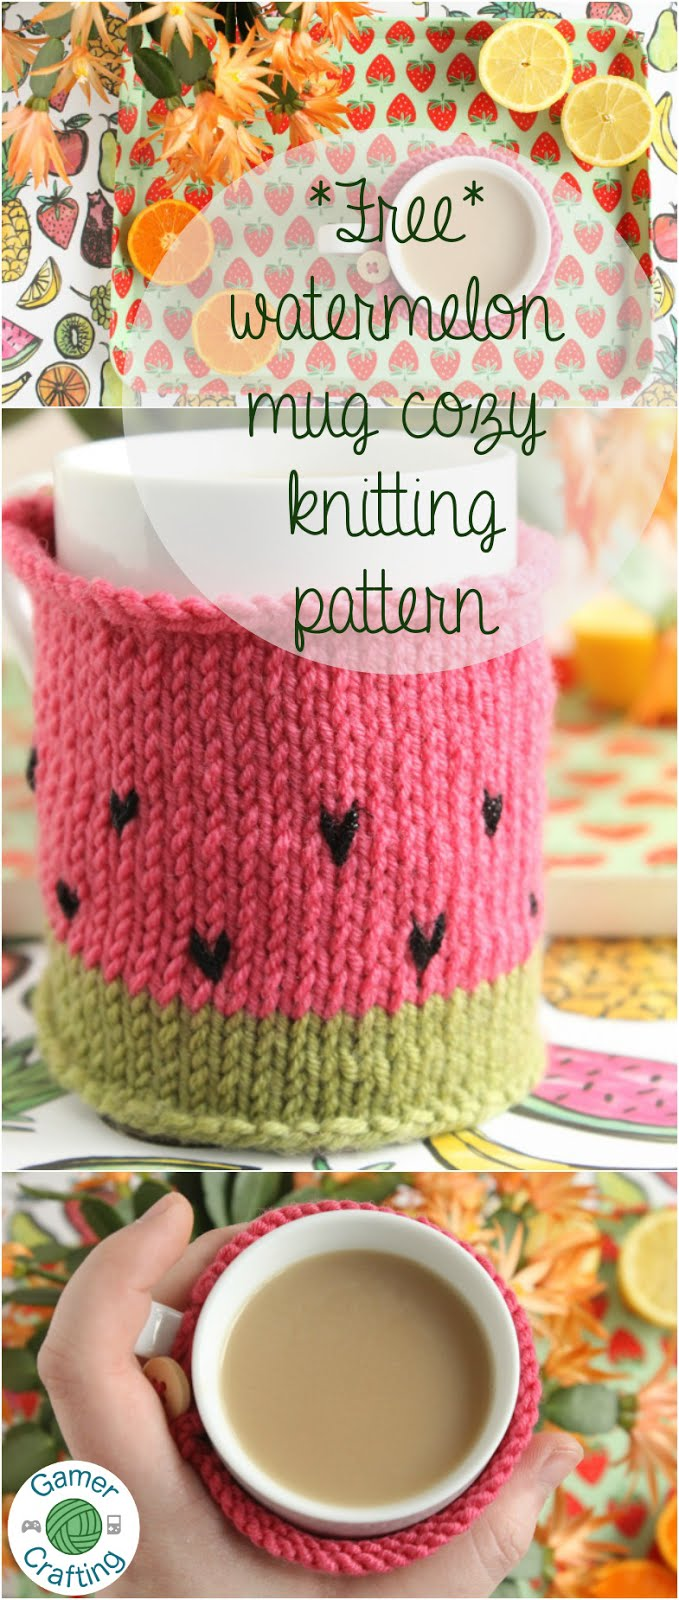 Free watermelon mug cozy knitting pattern by GamerCrafting